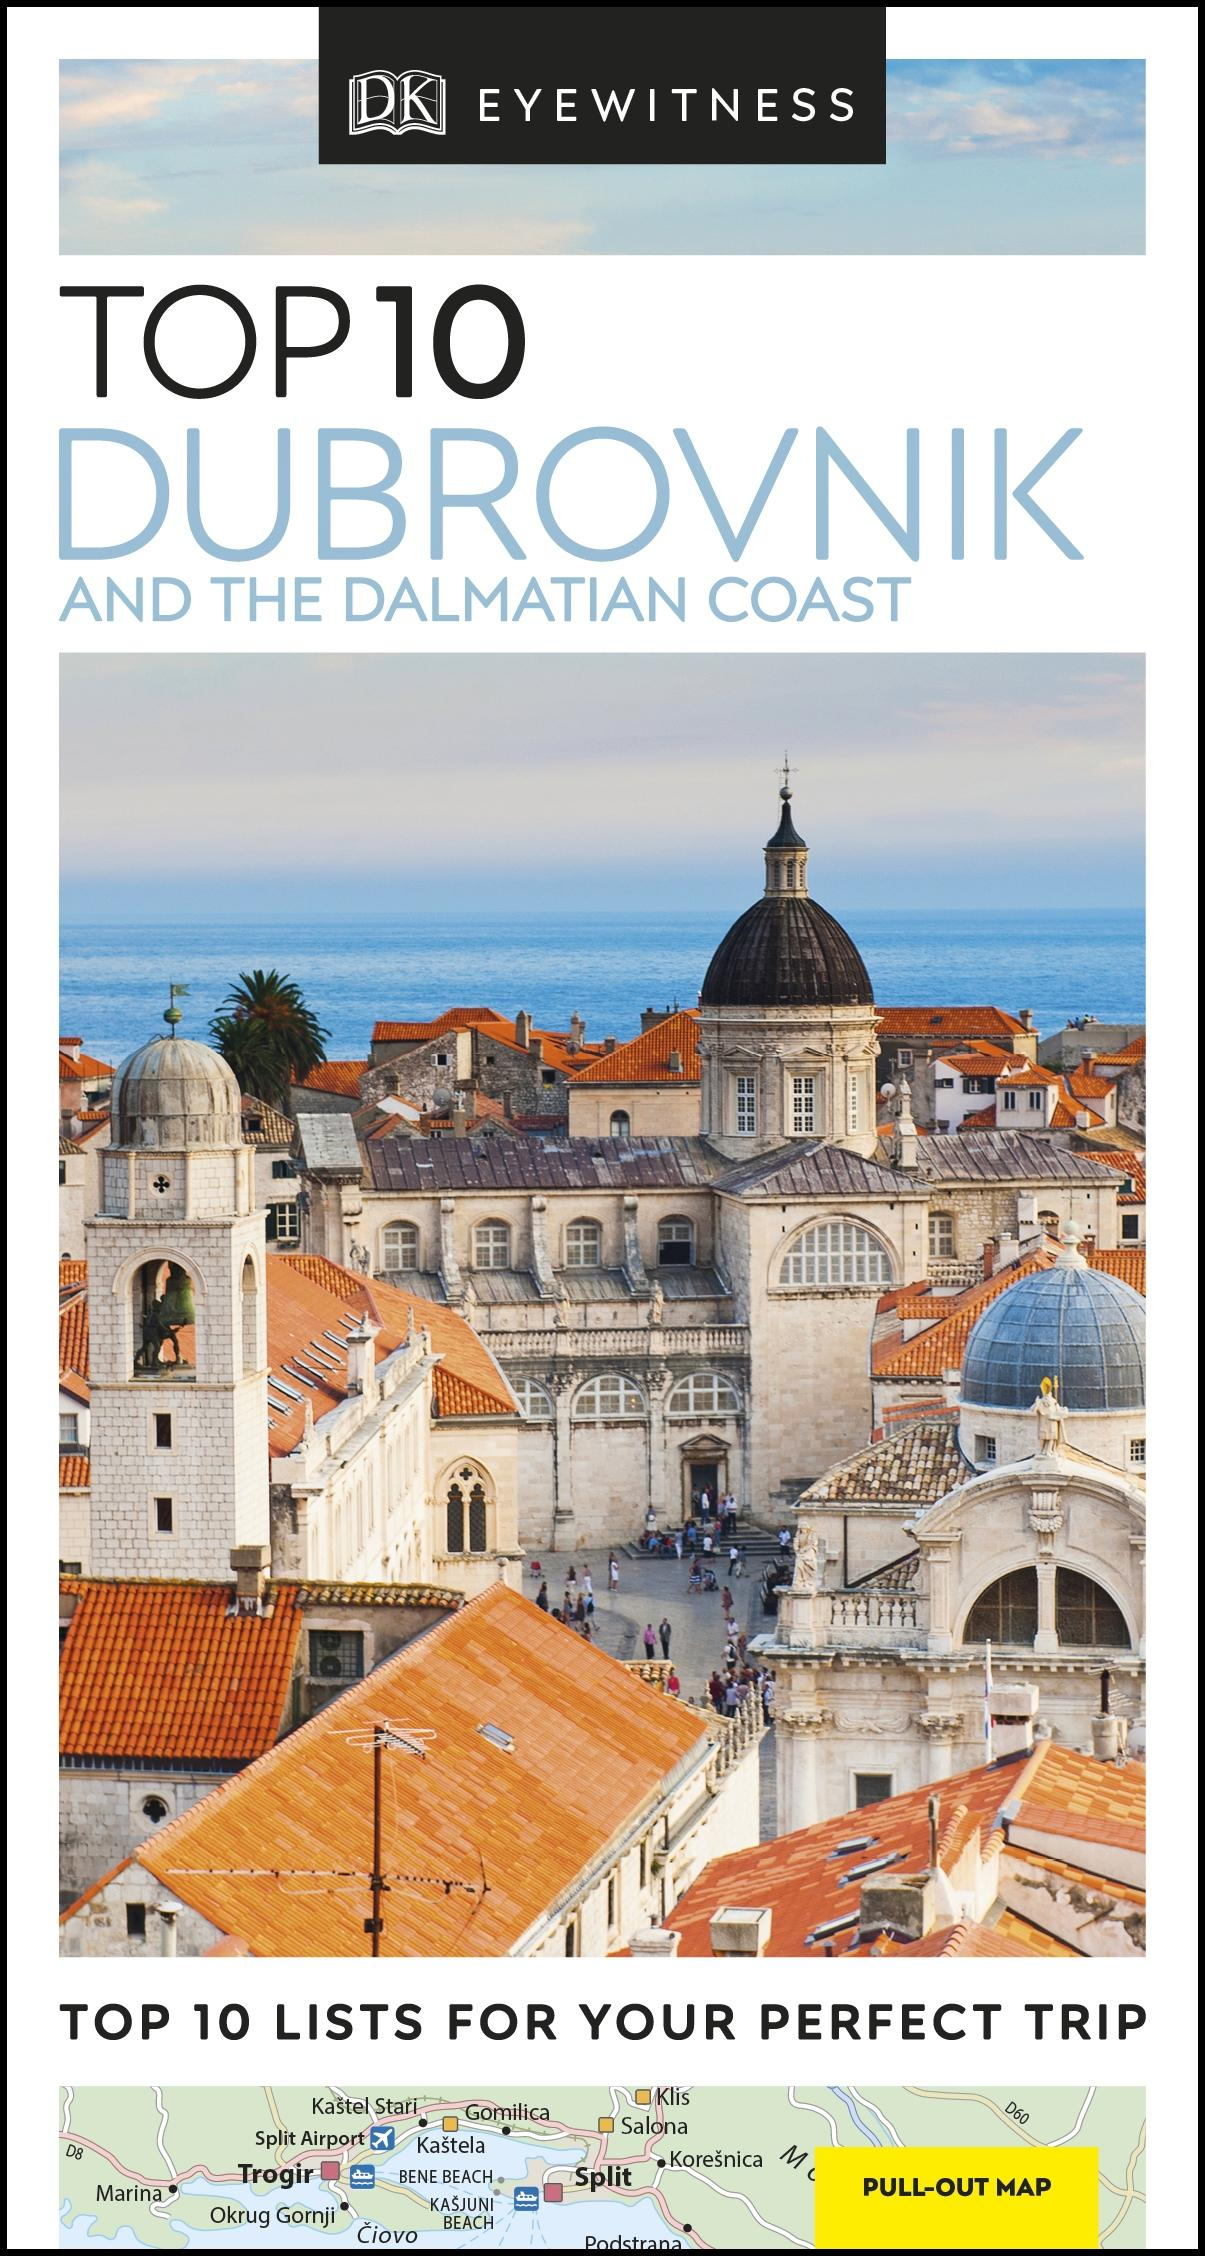 Top 10 Dubrovnik and the Dalmatian Coast (DK Eyewitness Travel Guide) by Unknown Author